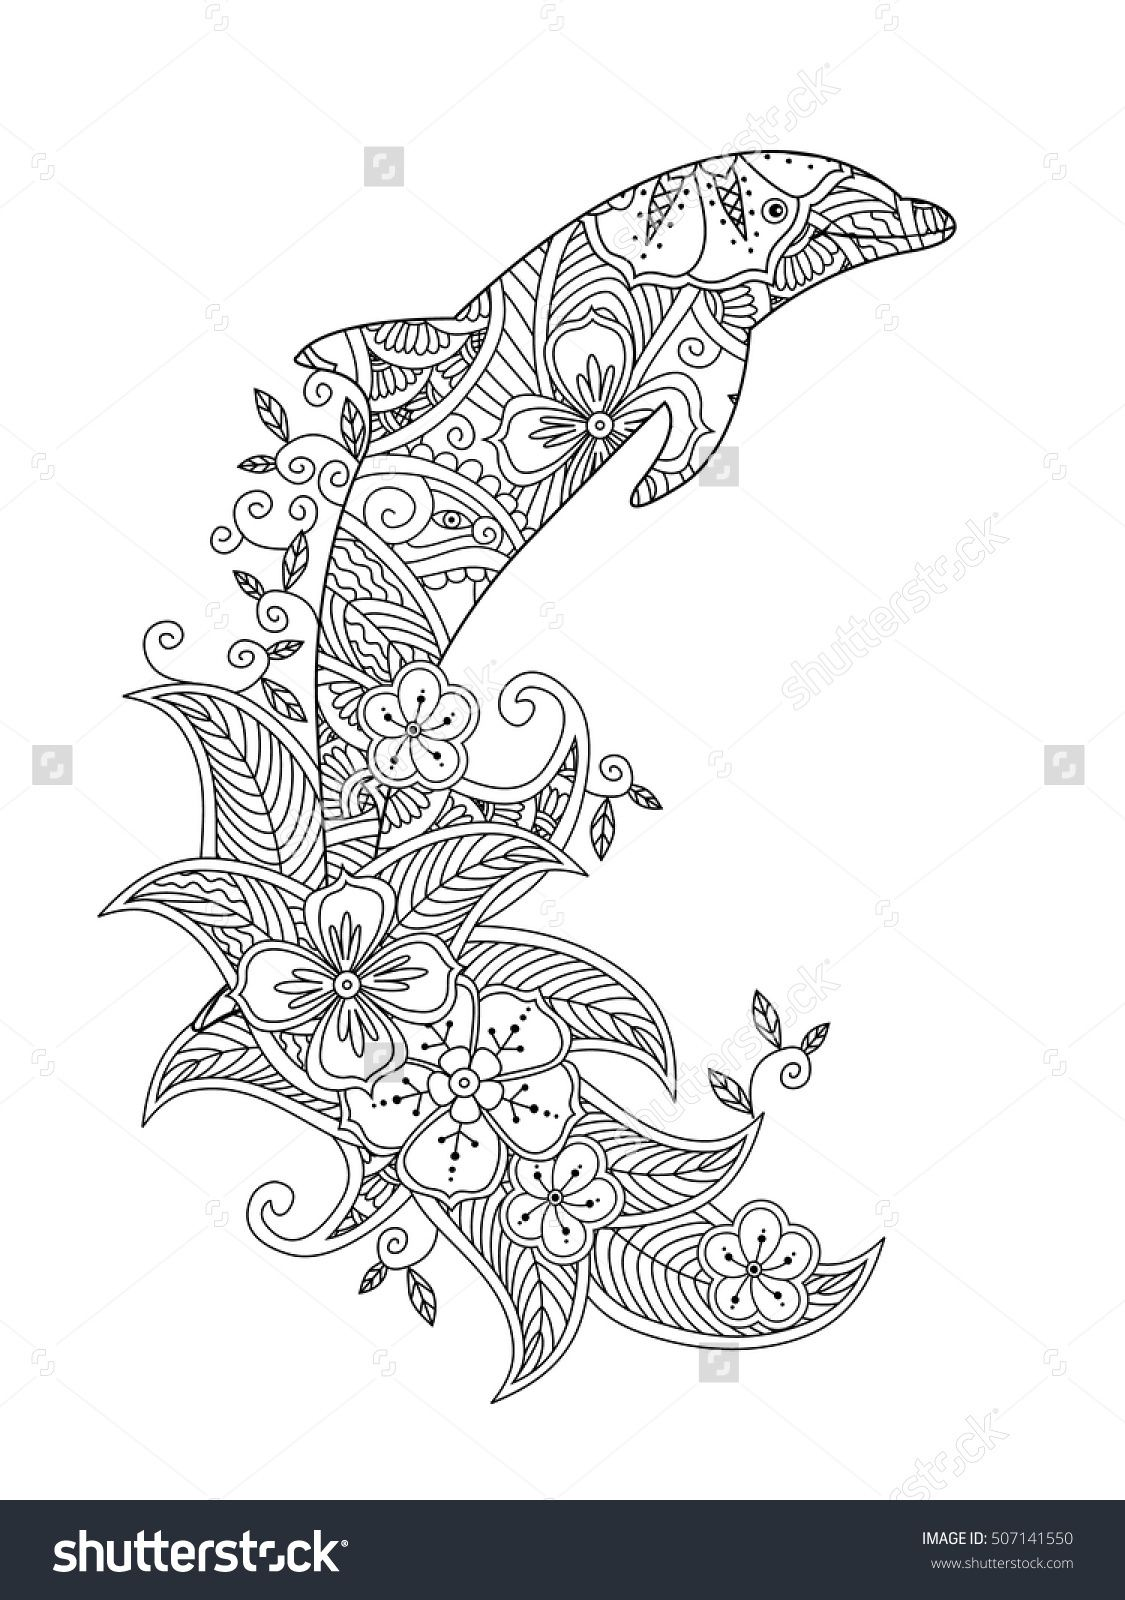 Coloring page with ornate jumping dolphin on floral waves. Vertical ...